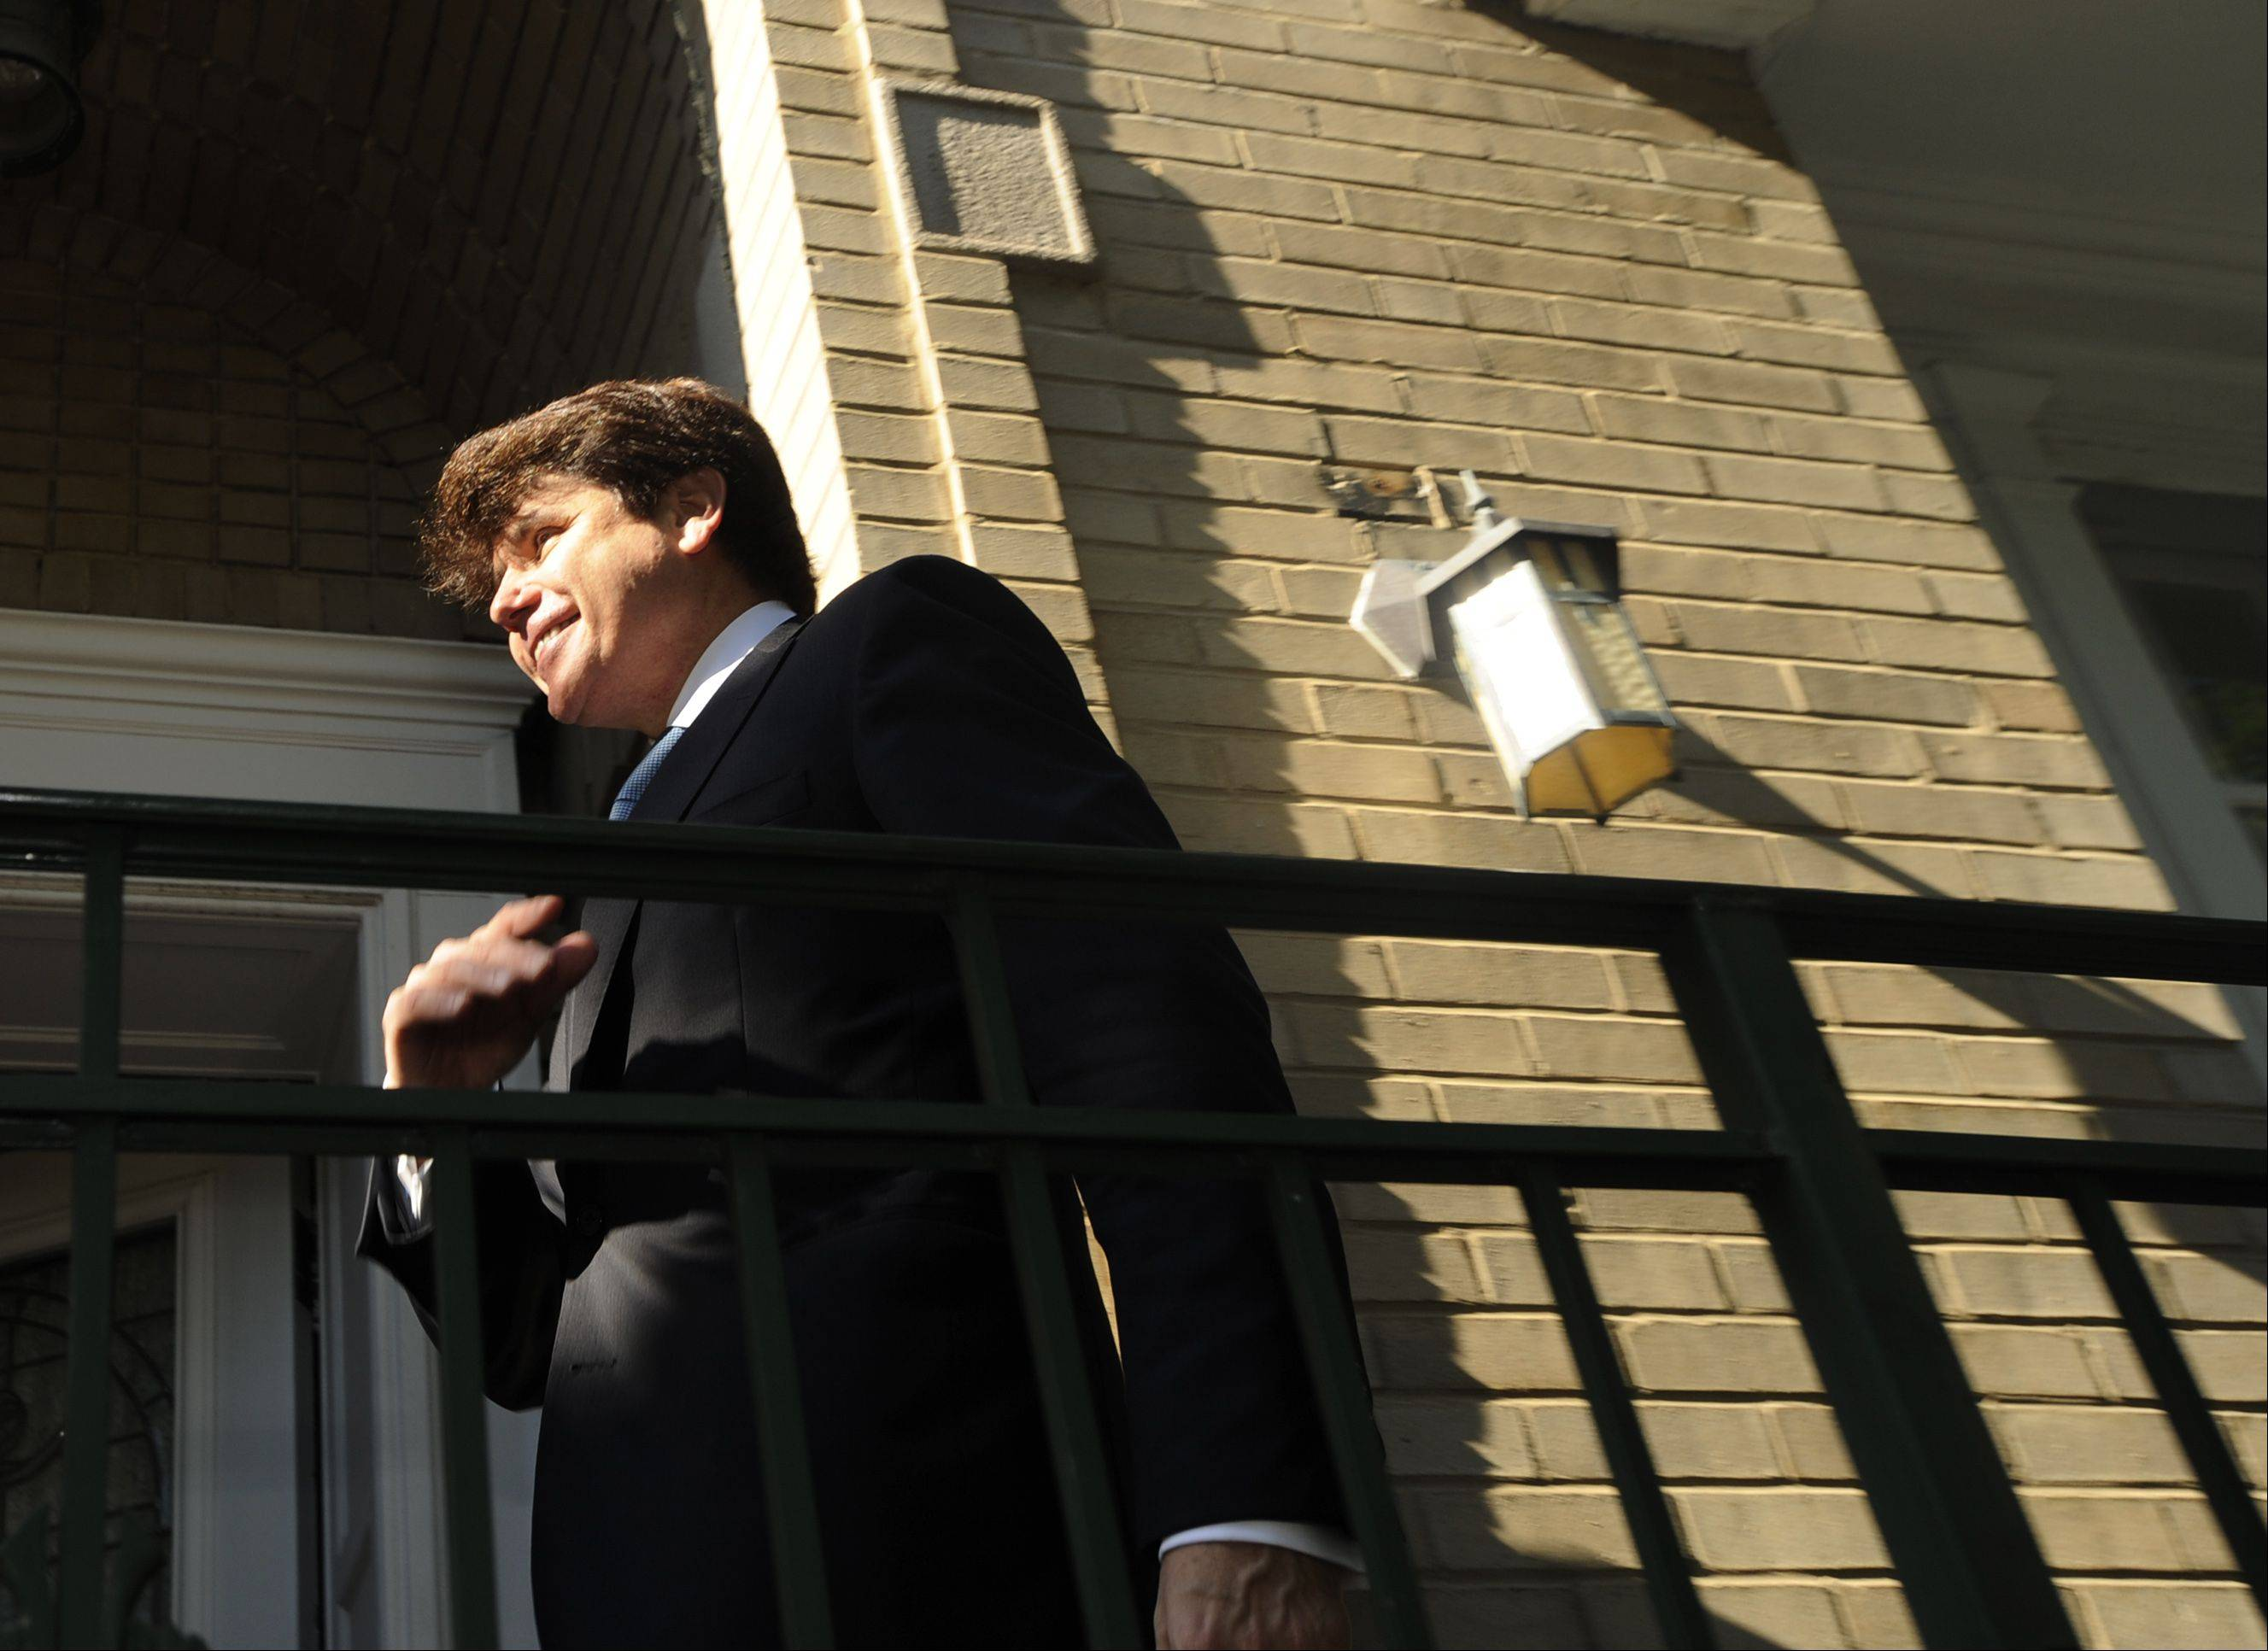 Associated Press file photo Rod Blagojevich and his wife, Patti, are asking $1.07 million for their house on the city's North Side. The house was where FBI wiretaps captured the former governor talking about profiting by naming someone to President Barack Obama's former Senate seat.